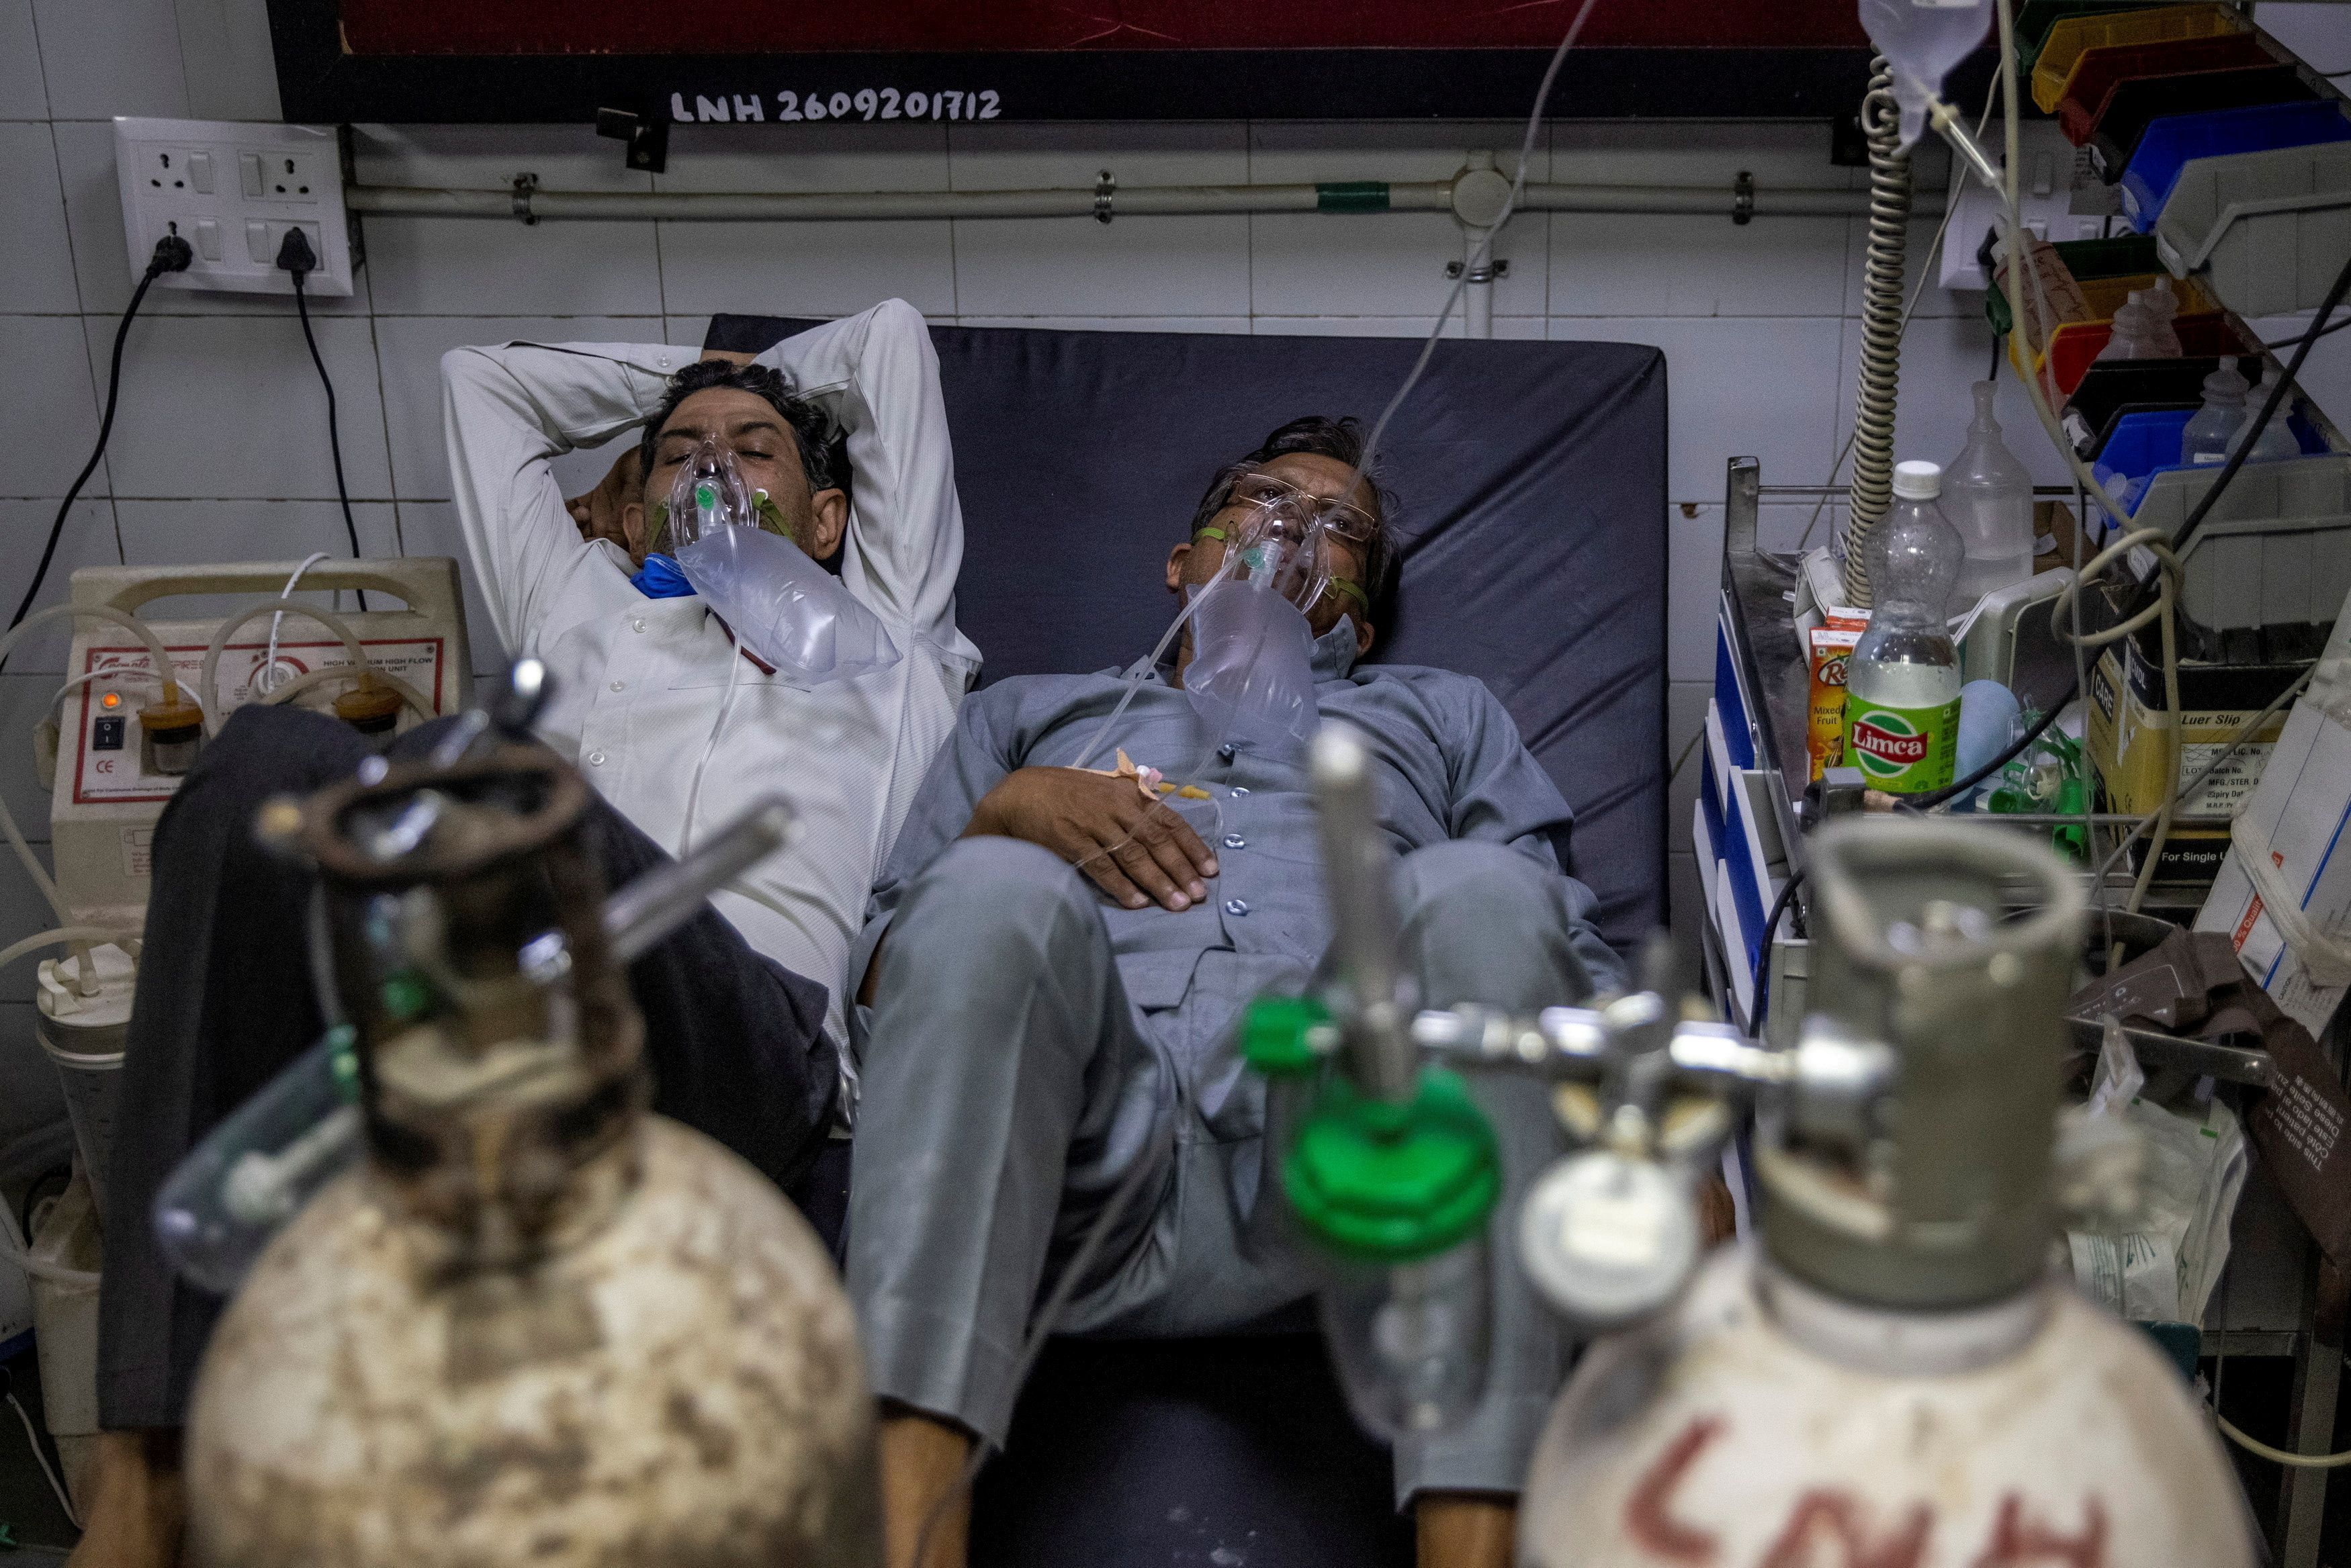 Patients suffering from the coronavirus disease (COVID-19) get treatment at the casualty ward in Lok Nayak Jai Prakash (LNJP) hospital, amidst the spread of the disease in New Delhi, India April 15, 2021. REUTERS/Danish Siddiqui/File Photo